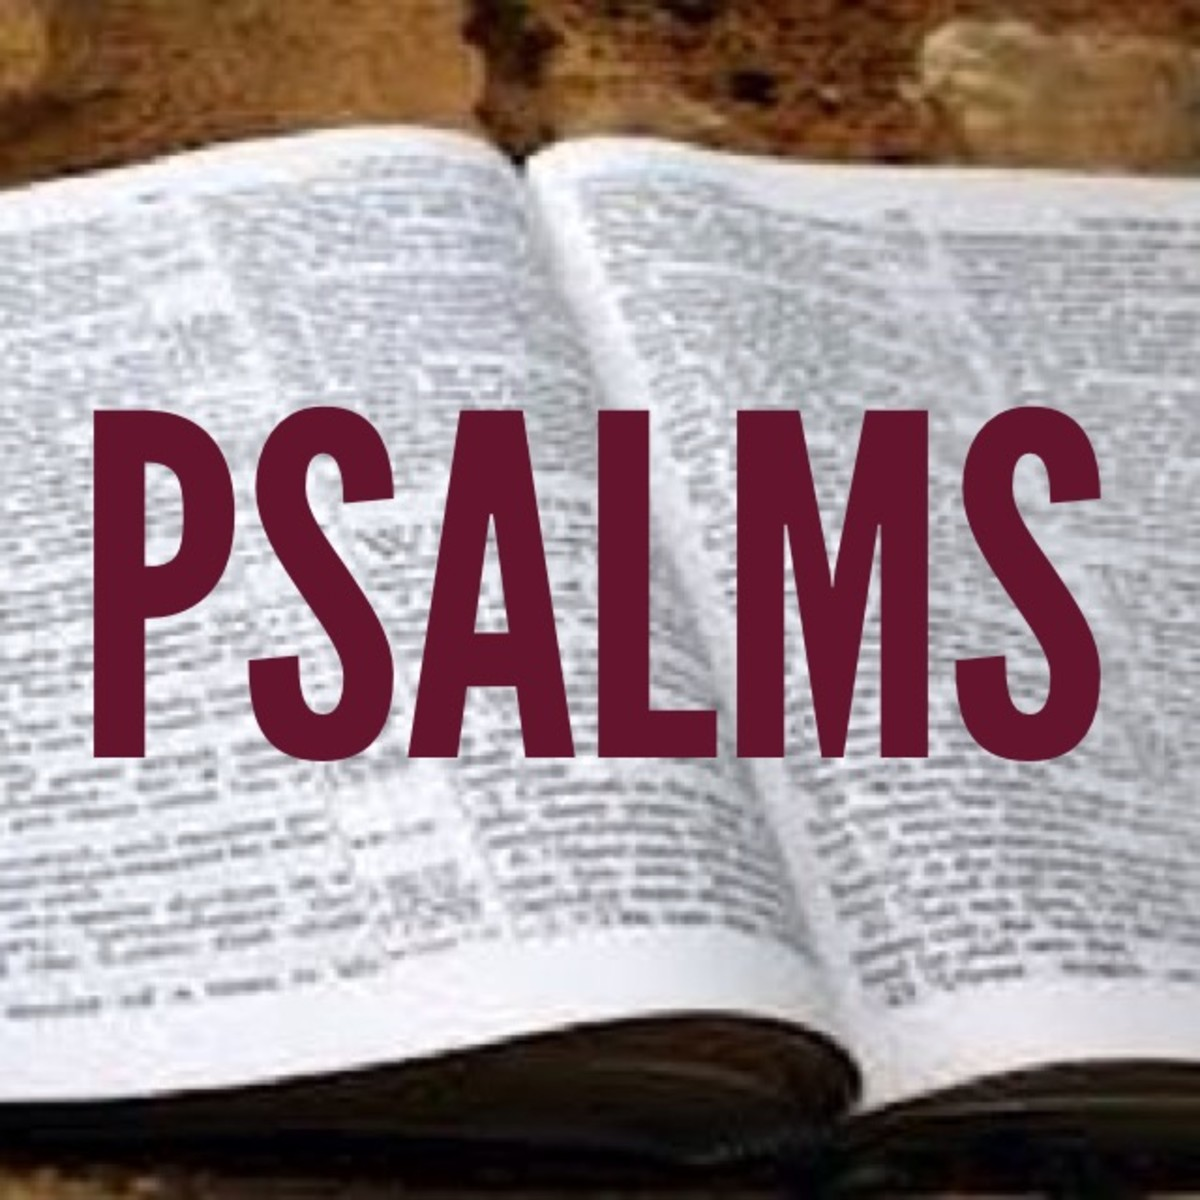 how-to-study-the-psalms